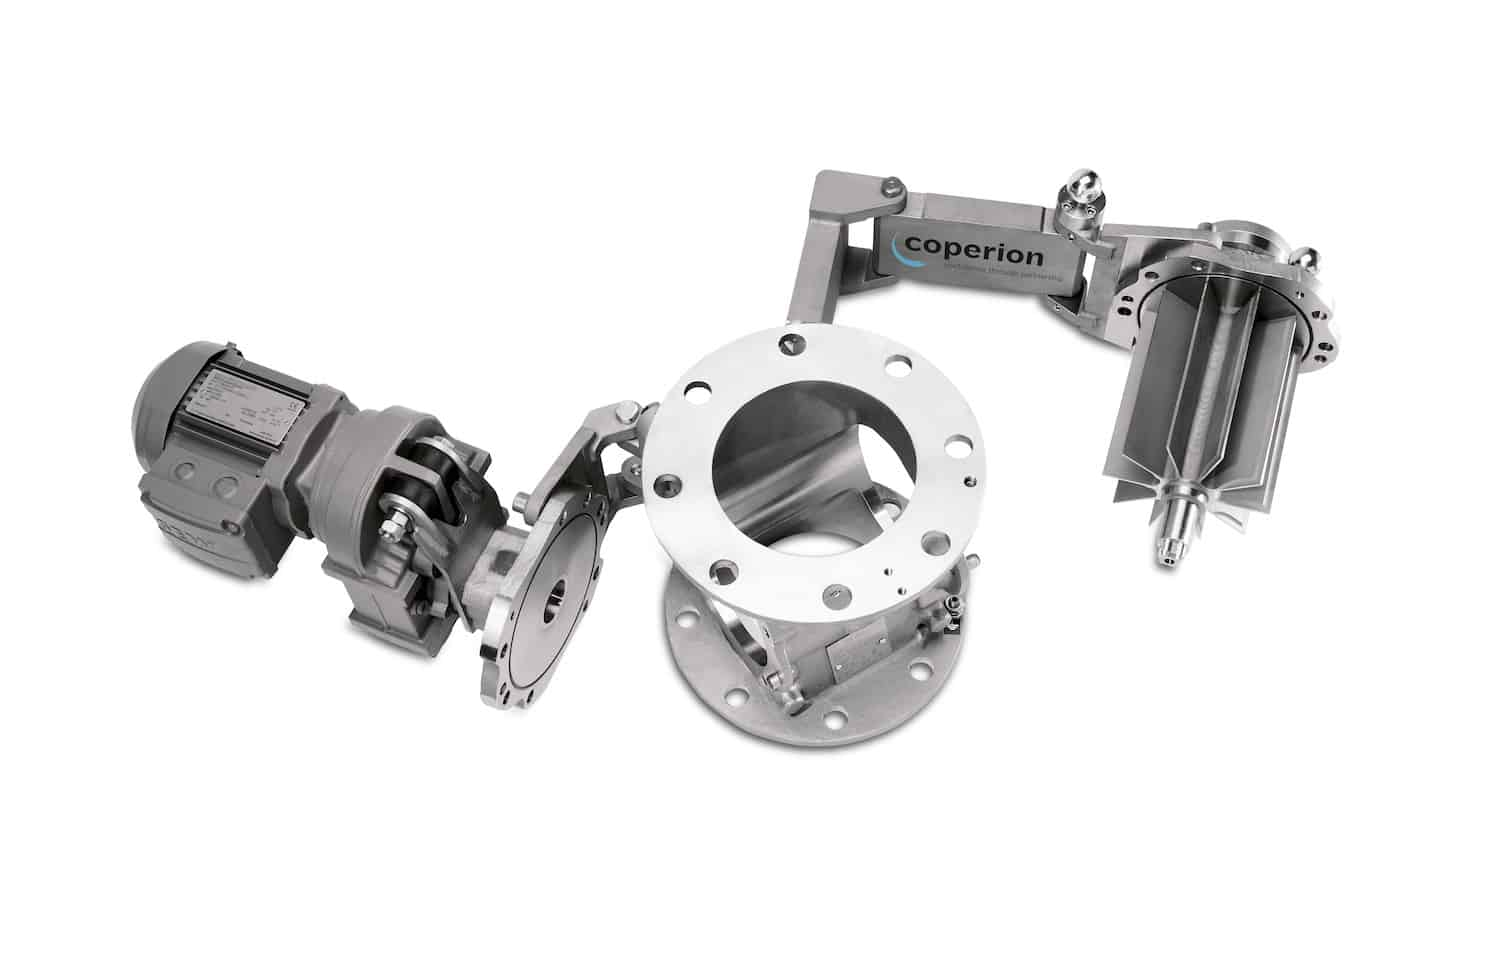 Clean-In-Place (CIP) vs. Clean-Out-of-Place (COP) for Rotary Valves